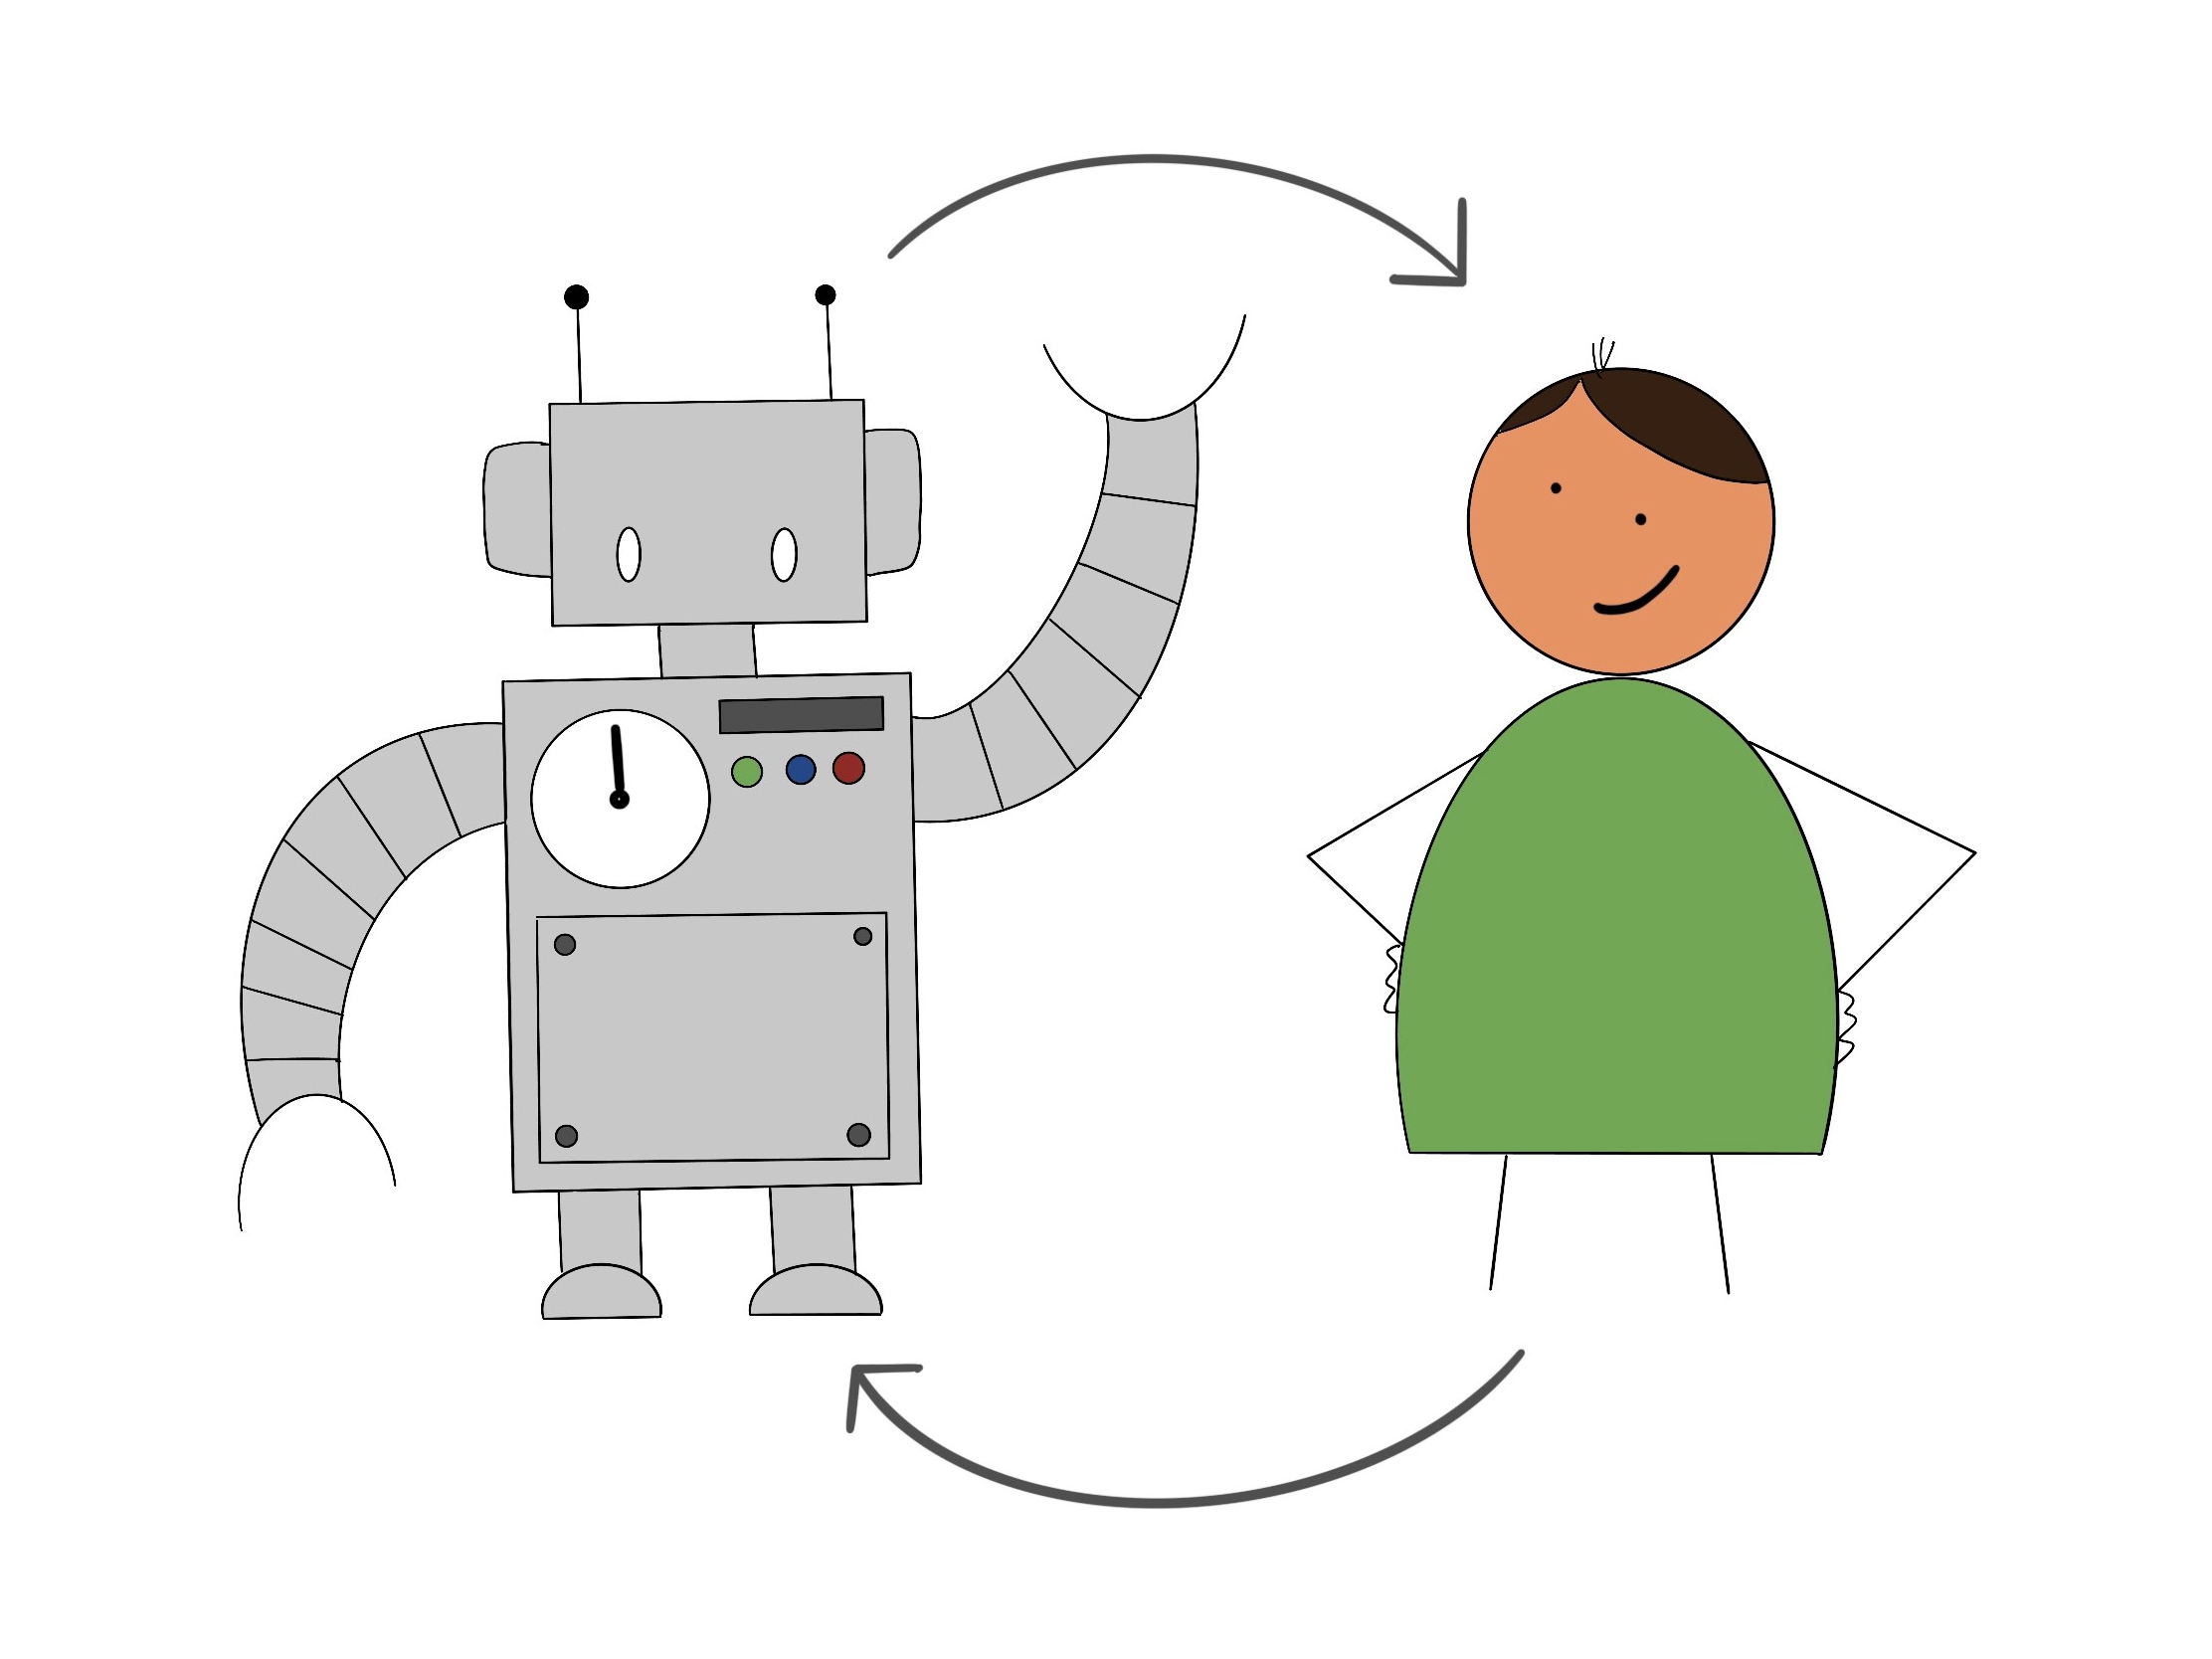 cartoon image of a robot and a person